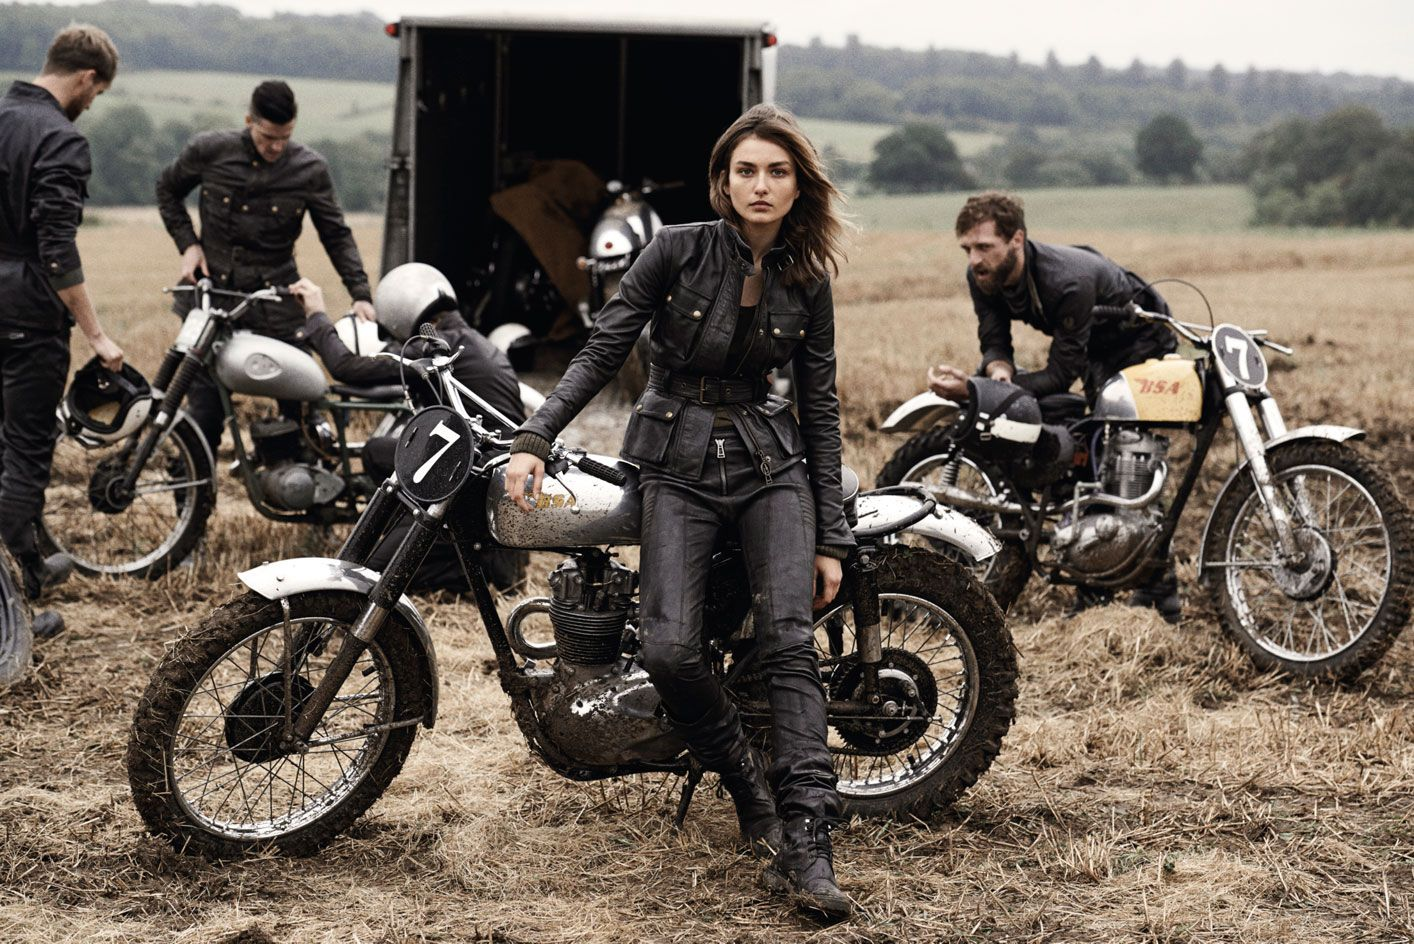 We talk bikes and Belstaff with David Beckham at the launch of 'Off Road', a new book he stars in shot by Peter Lindbergh